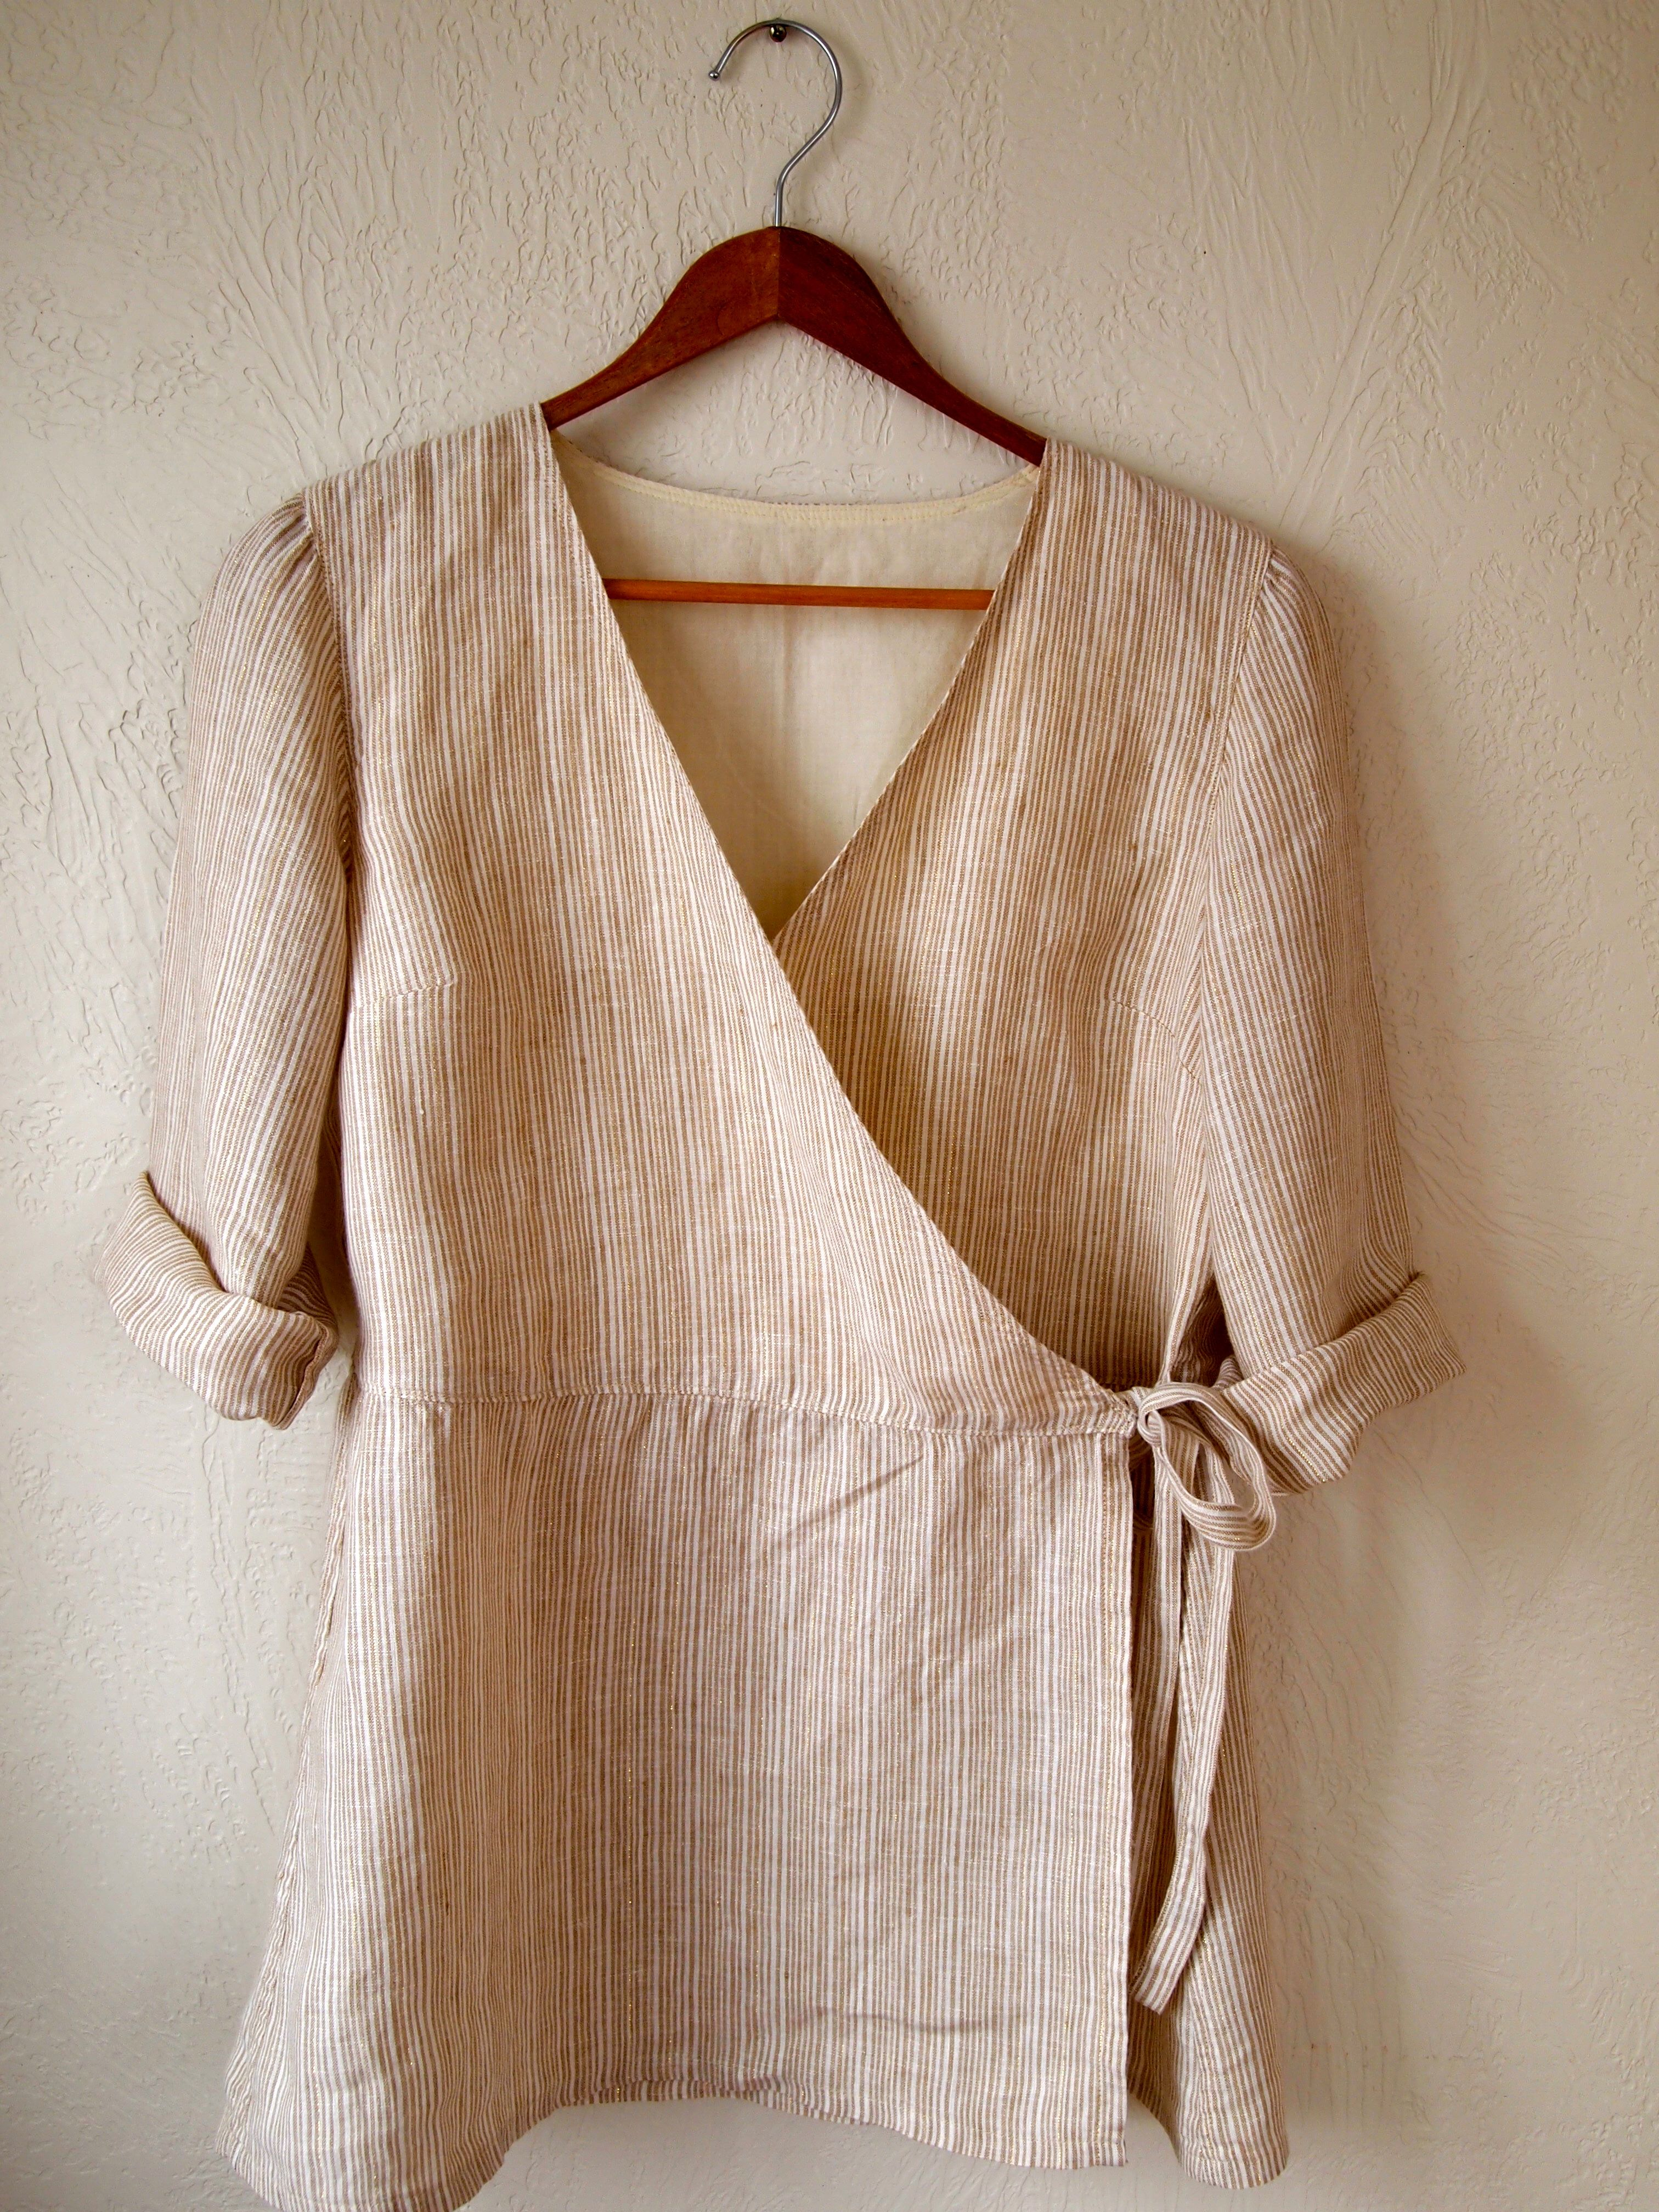 Linen Shirt Pattern From Simple Modern Sewing Sewing